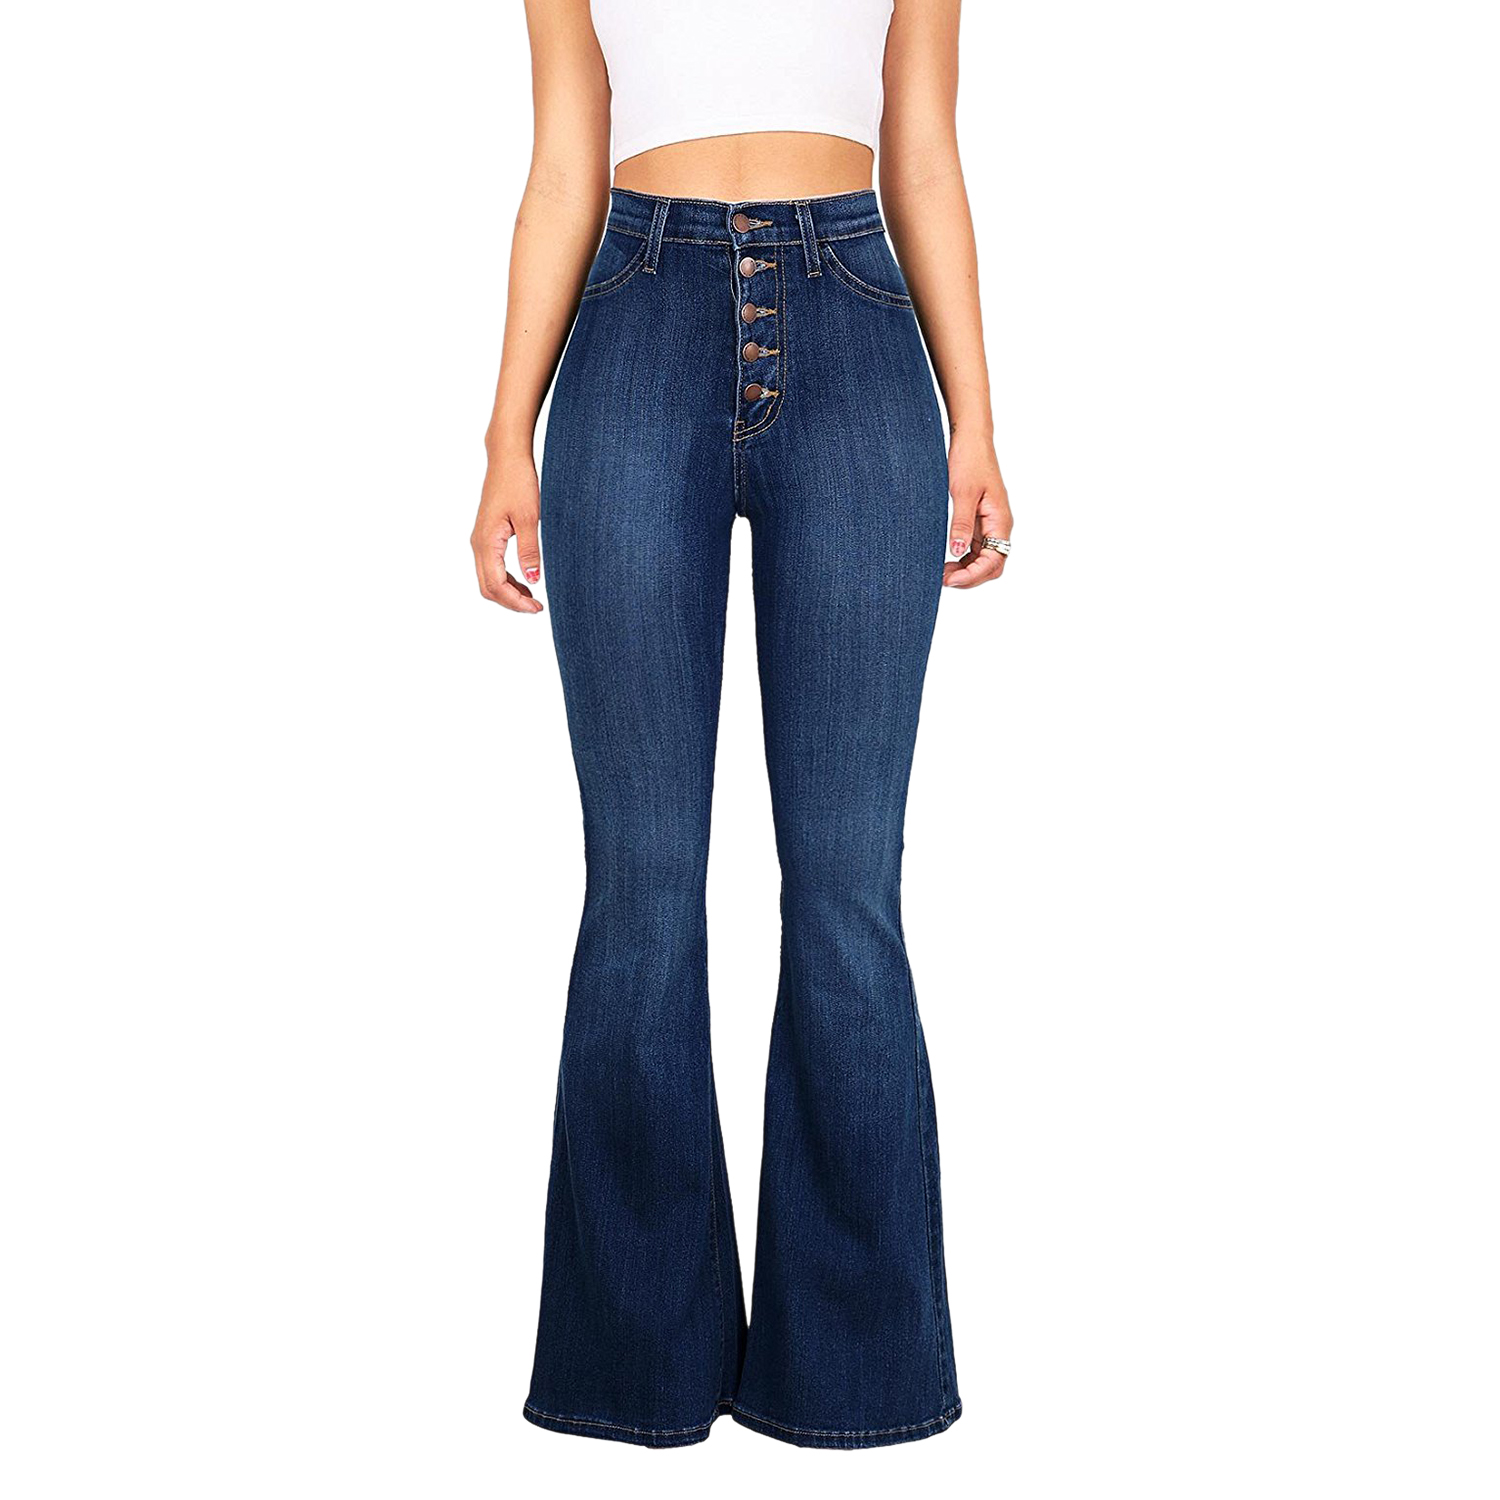 MYTL-Women Vintage High Waist Stretchy Multi Button Fit Flare   Jeans   Ladies Casual Washed Denim Trousers